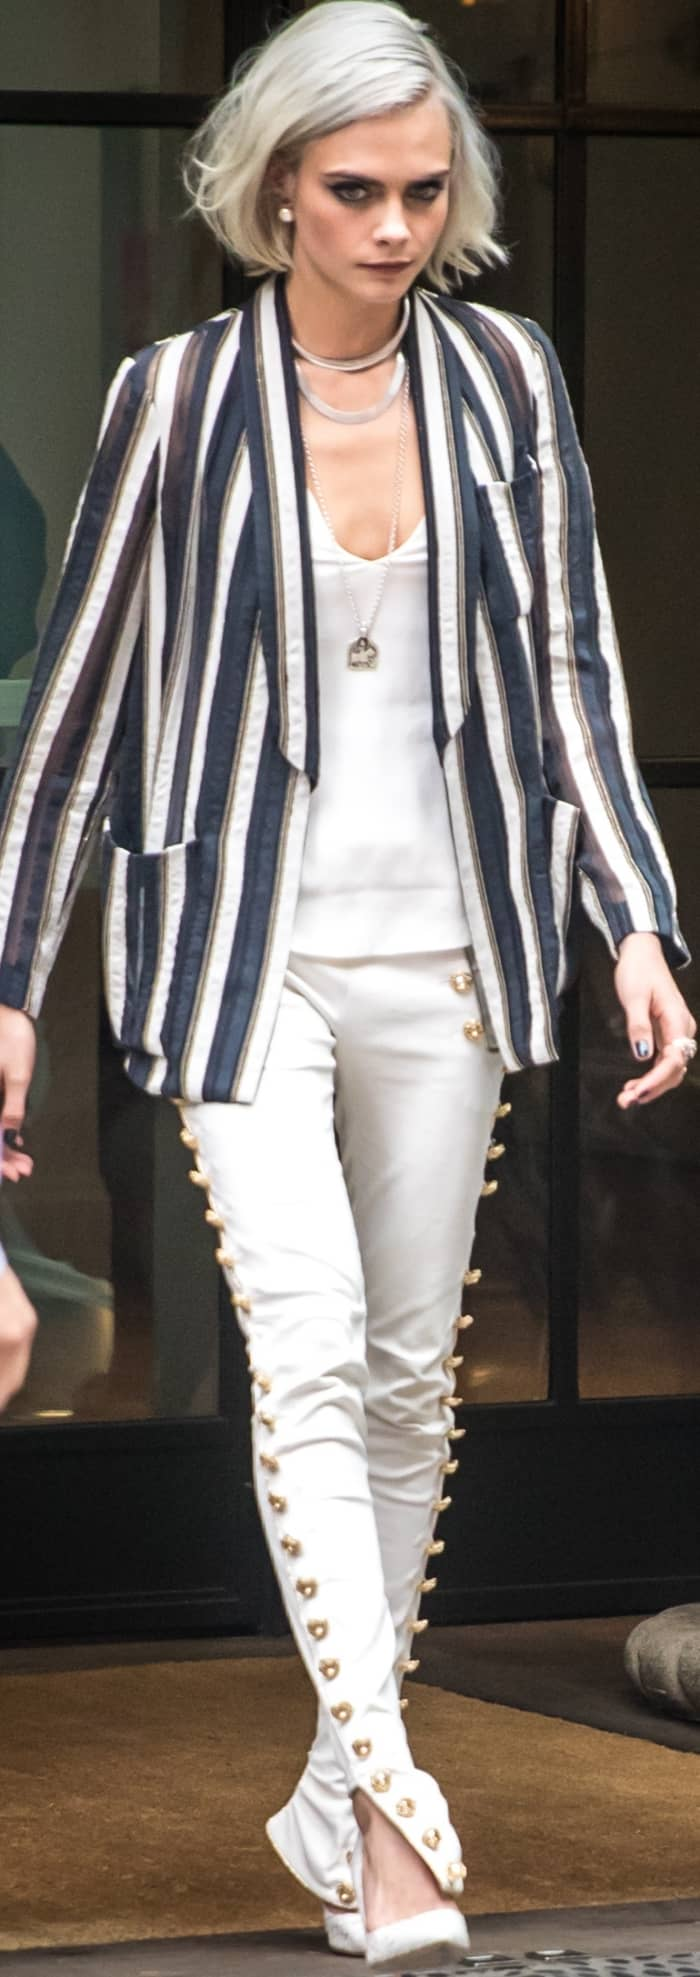 Cara Delevingne wearing a Brunello Cucinelli blazer, J Brand tank, Redemption skinny jeans, and Olgana Paris pumps in NYC